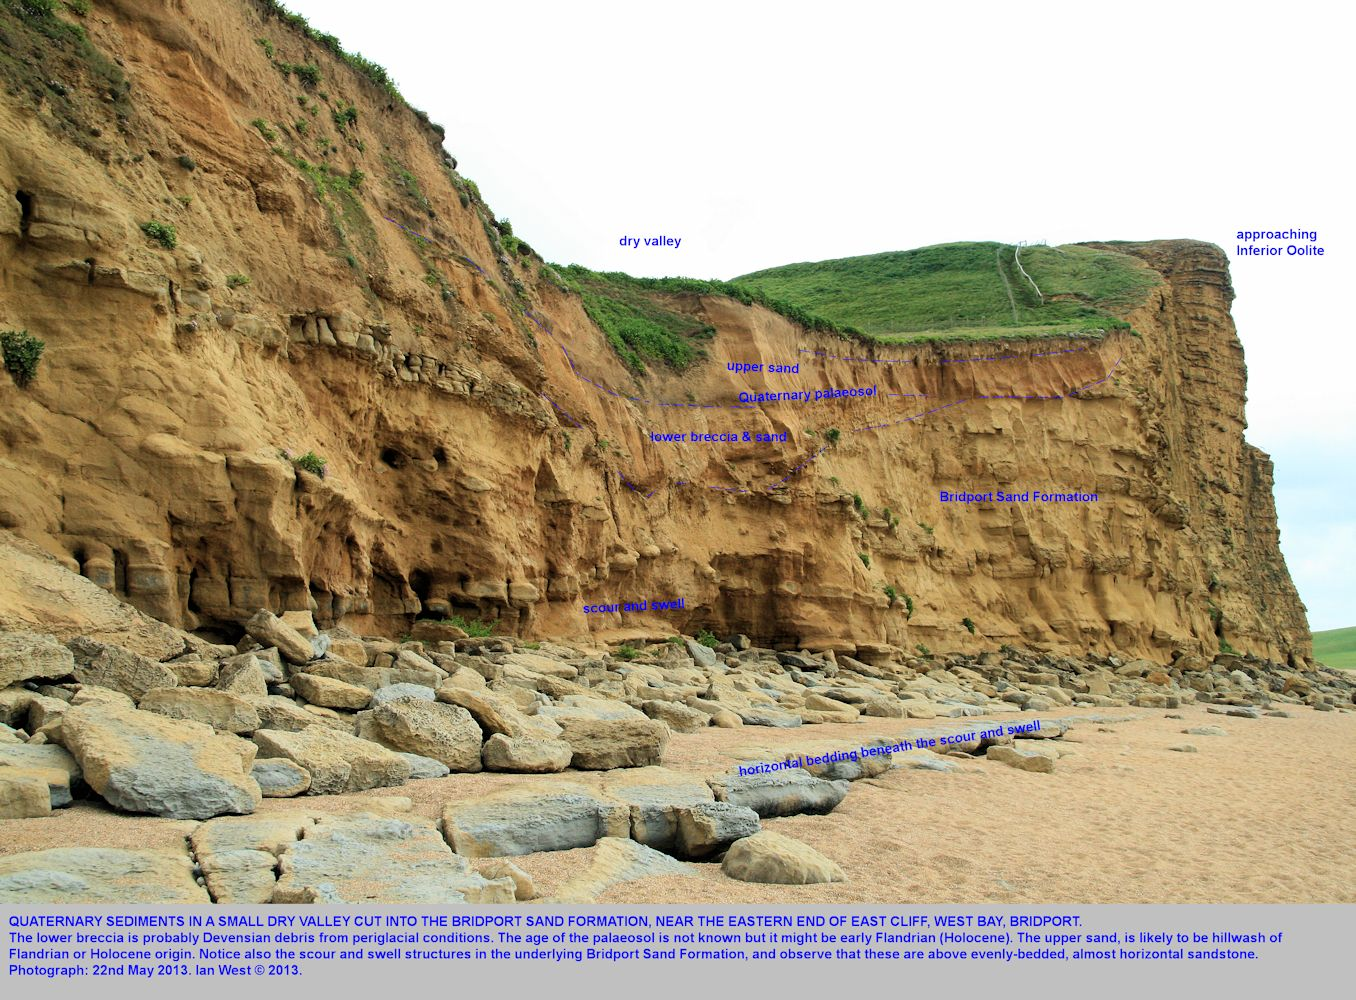 Quaternary deposits in a small dry valley, East Cliff, West Bay, Bridport, Dorset, May 2013